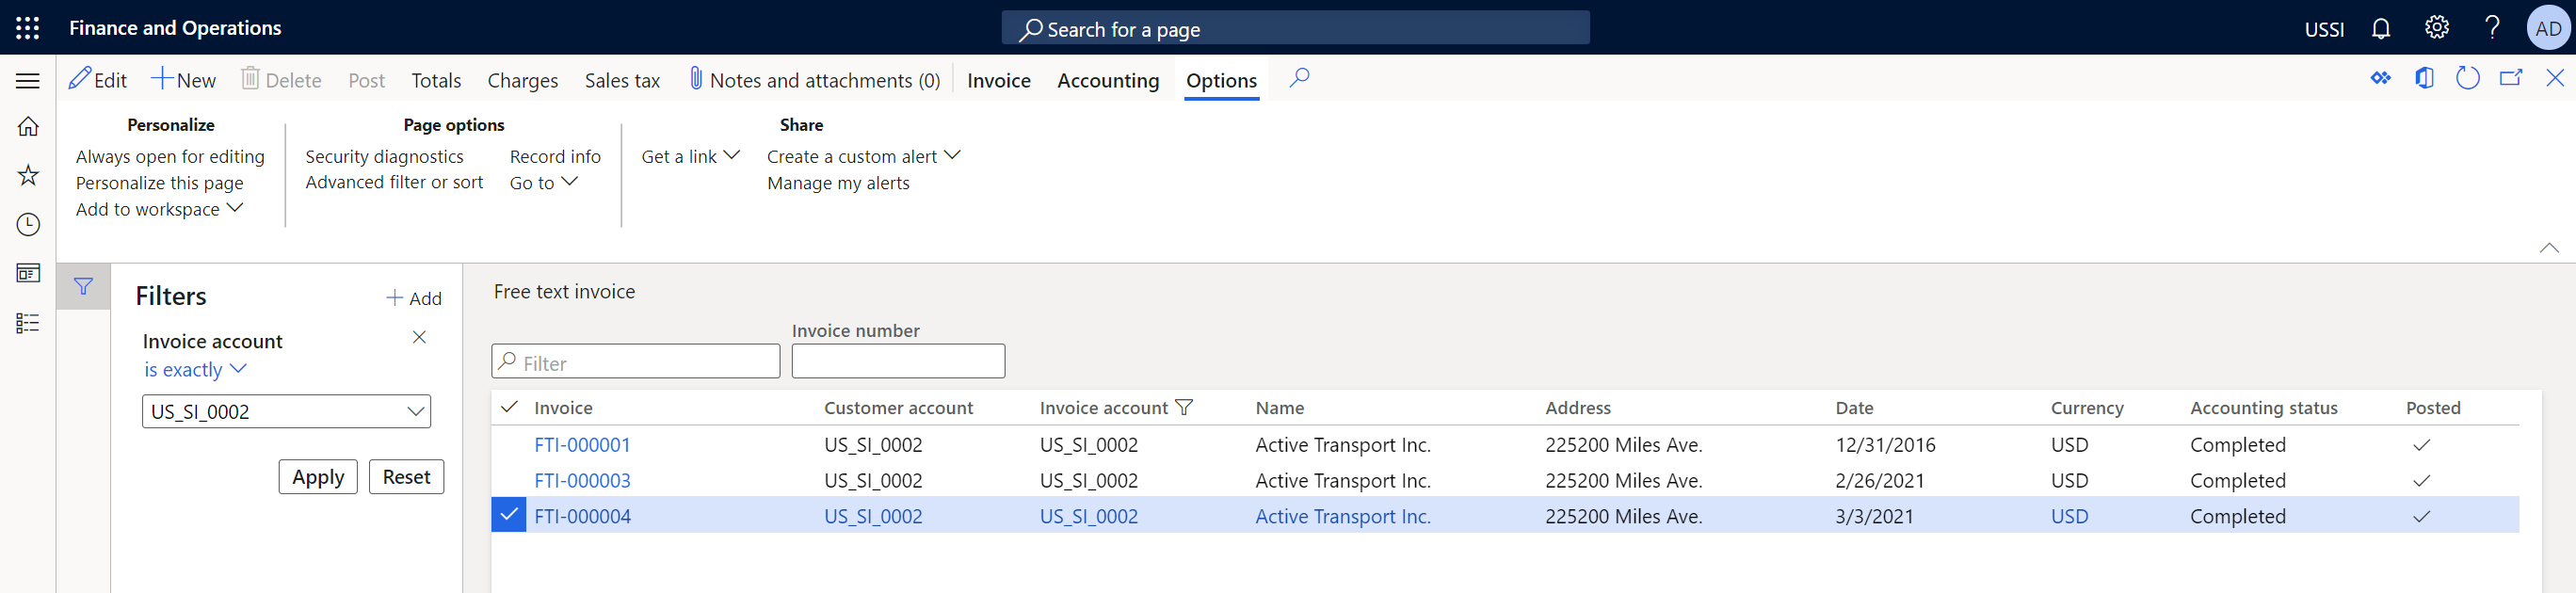 Finance And Operations Virtual Entity Integration - Invoices For Customer Account